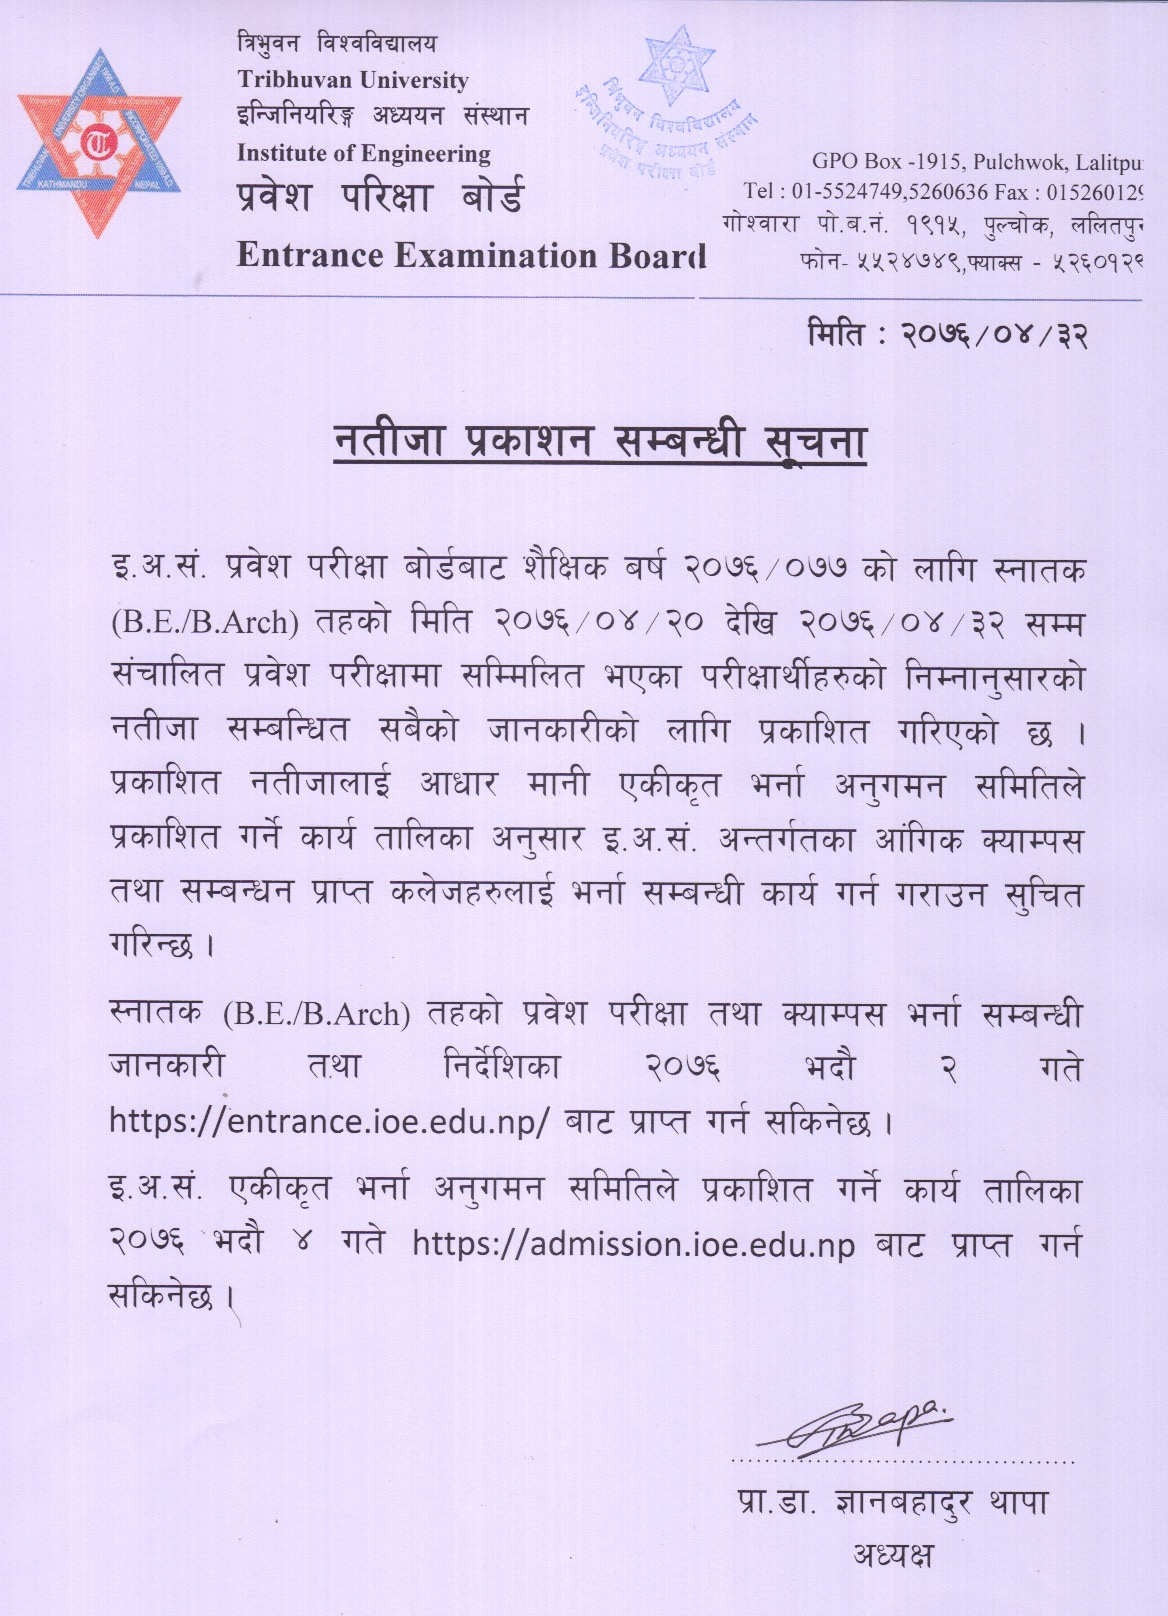 Entrance Examination Board